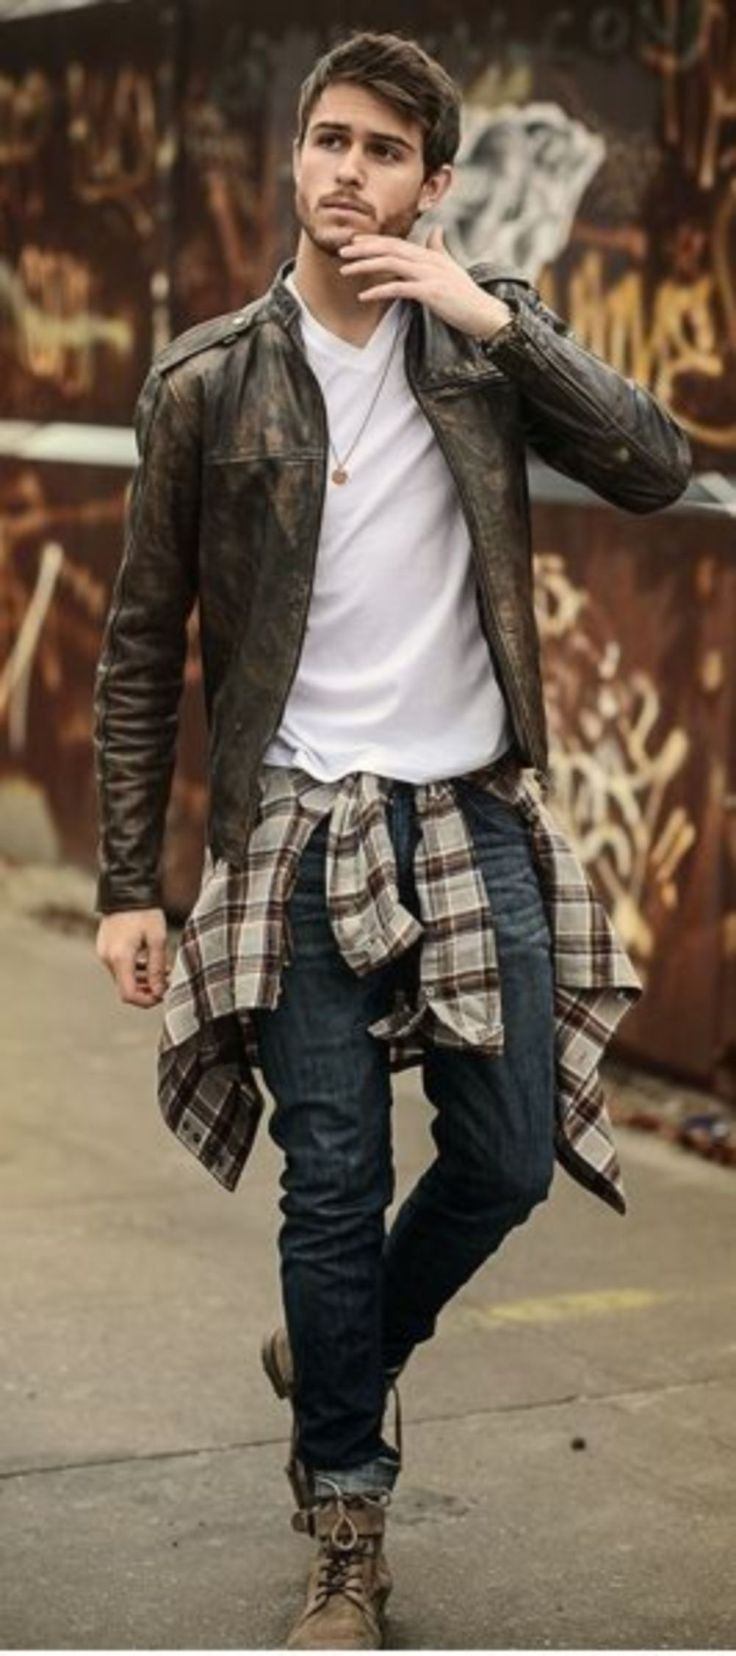 Nice 51 Fashionable Flannel For Men Style Ideas from https://www.fashionetter.com/2017/06/18/51-fashionable-flannel-men-style-ideas/